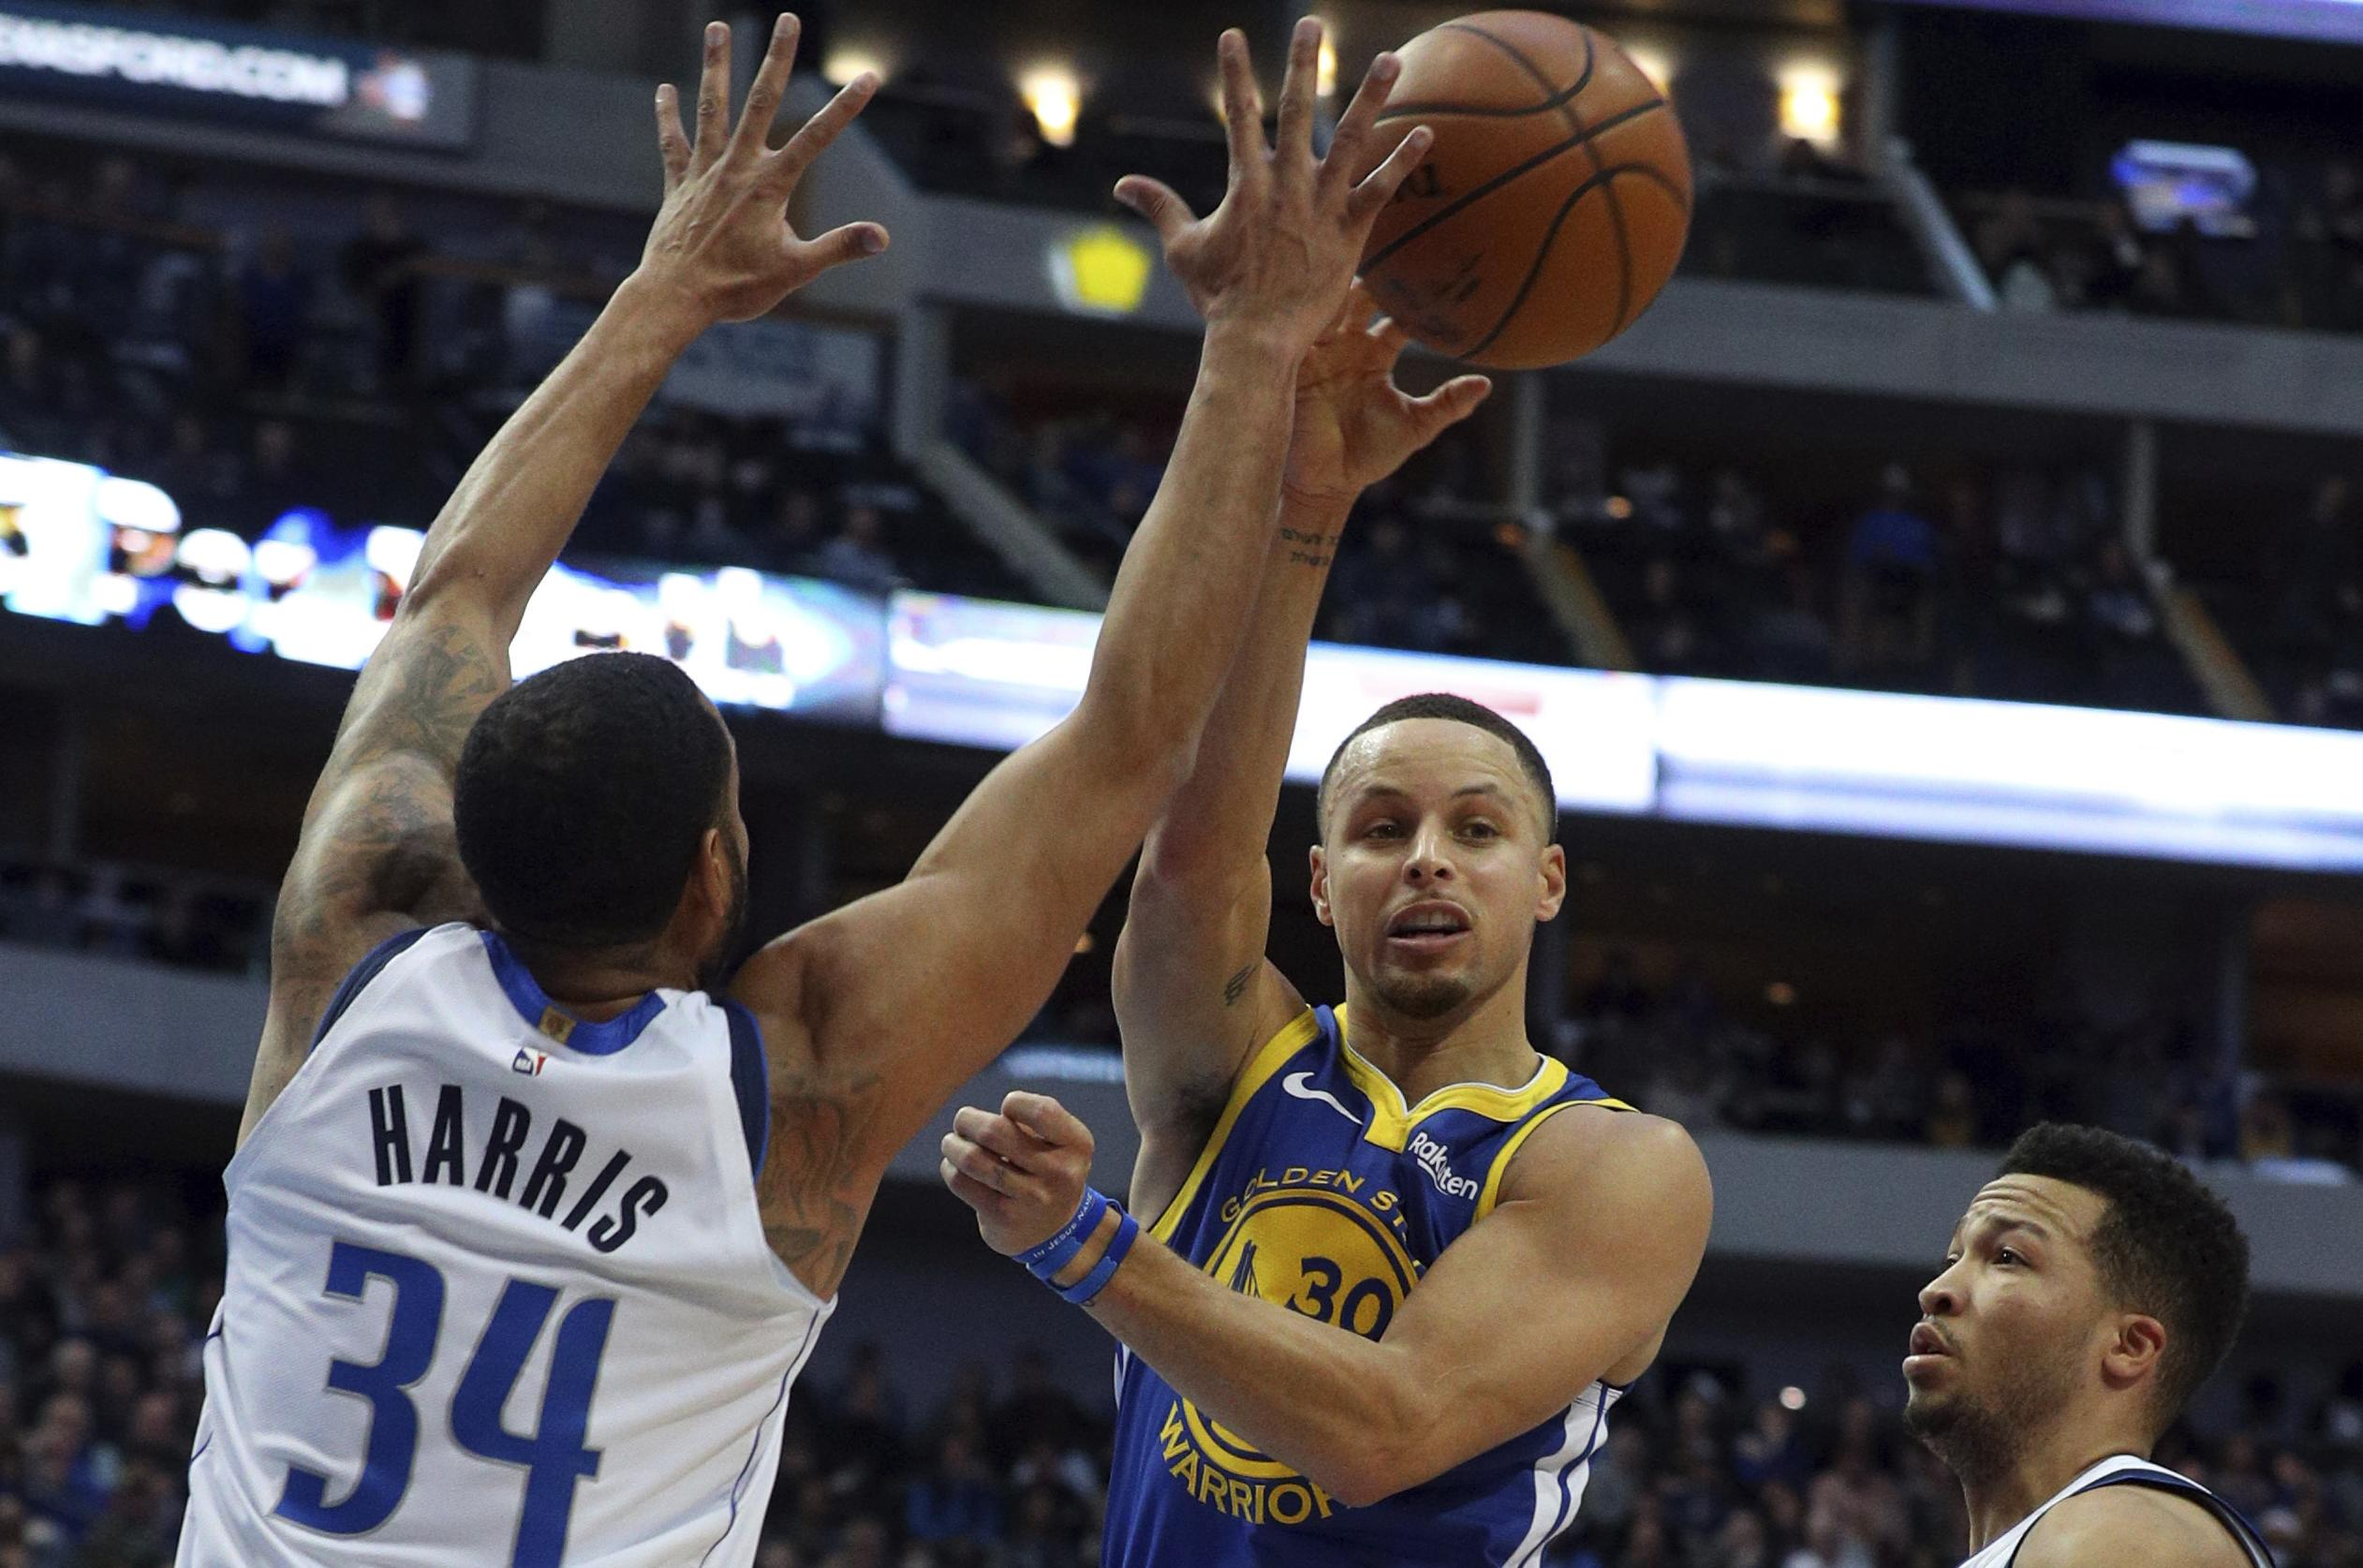 cb7824f6c25 Golden State Warriors guard Stephen Curry (30) passes the ball around  Dallas Mavericks guard